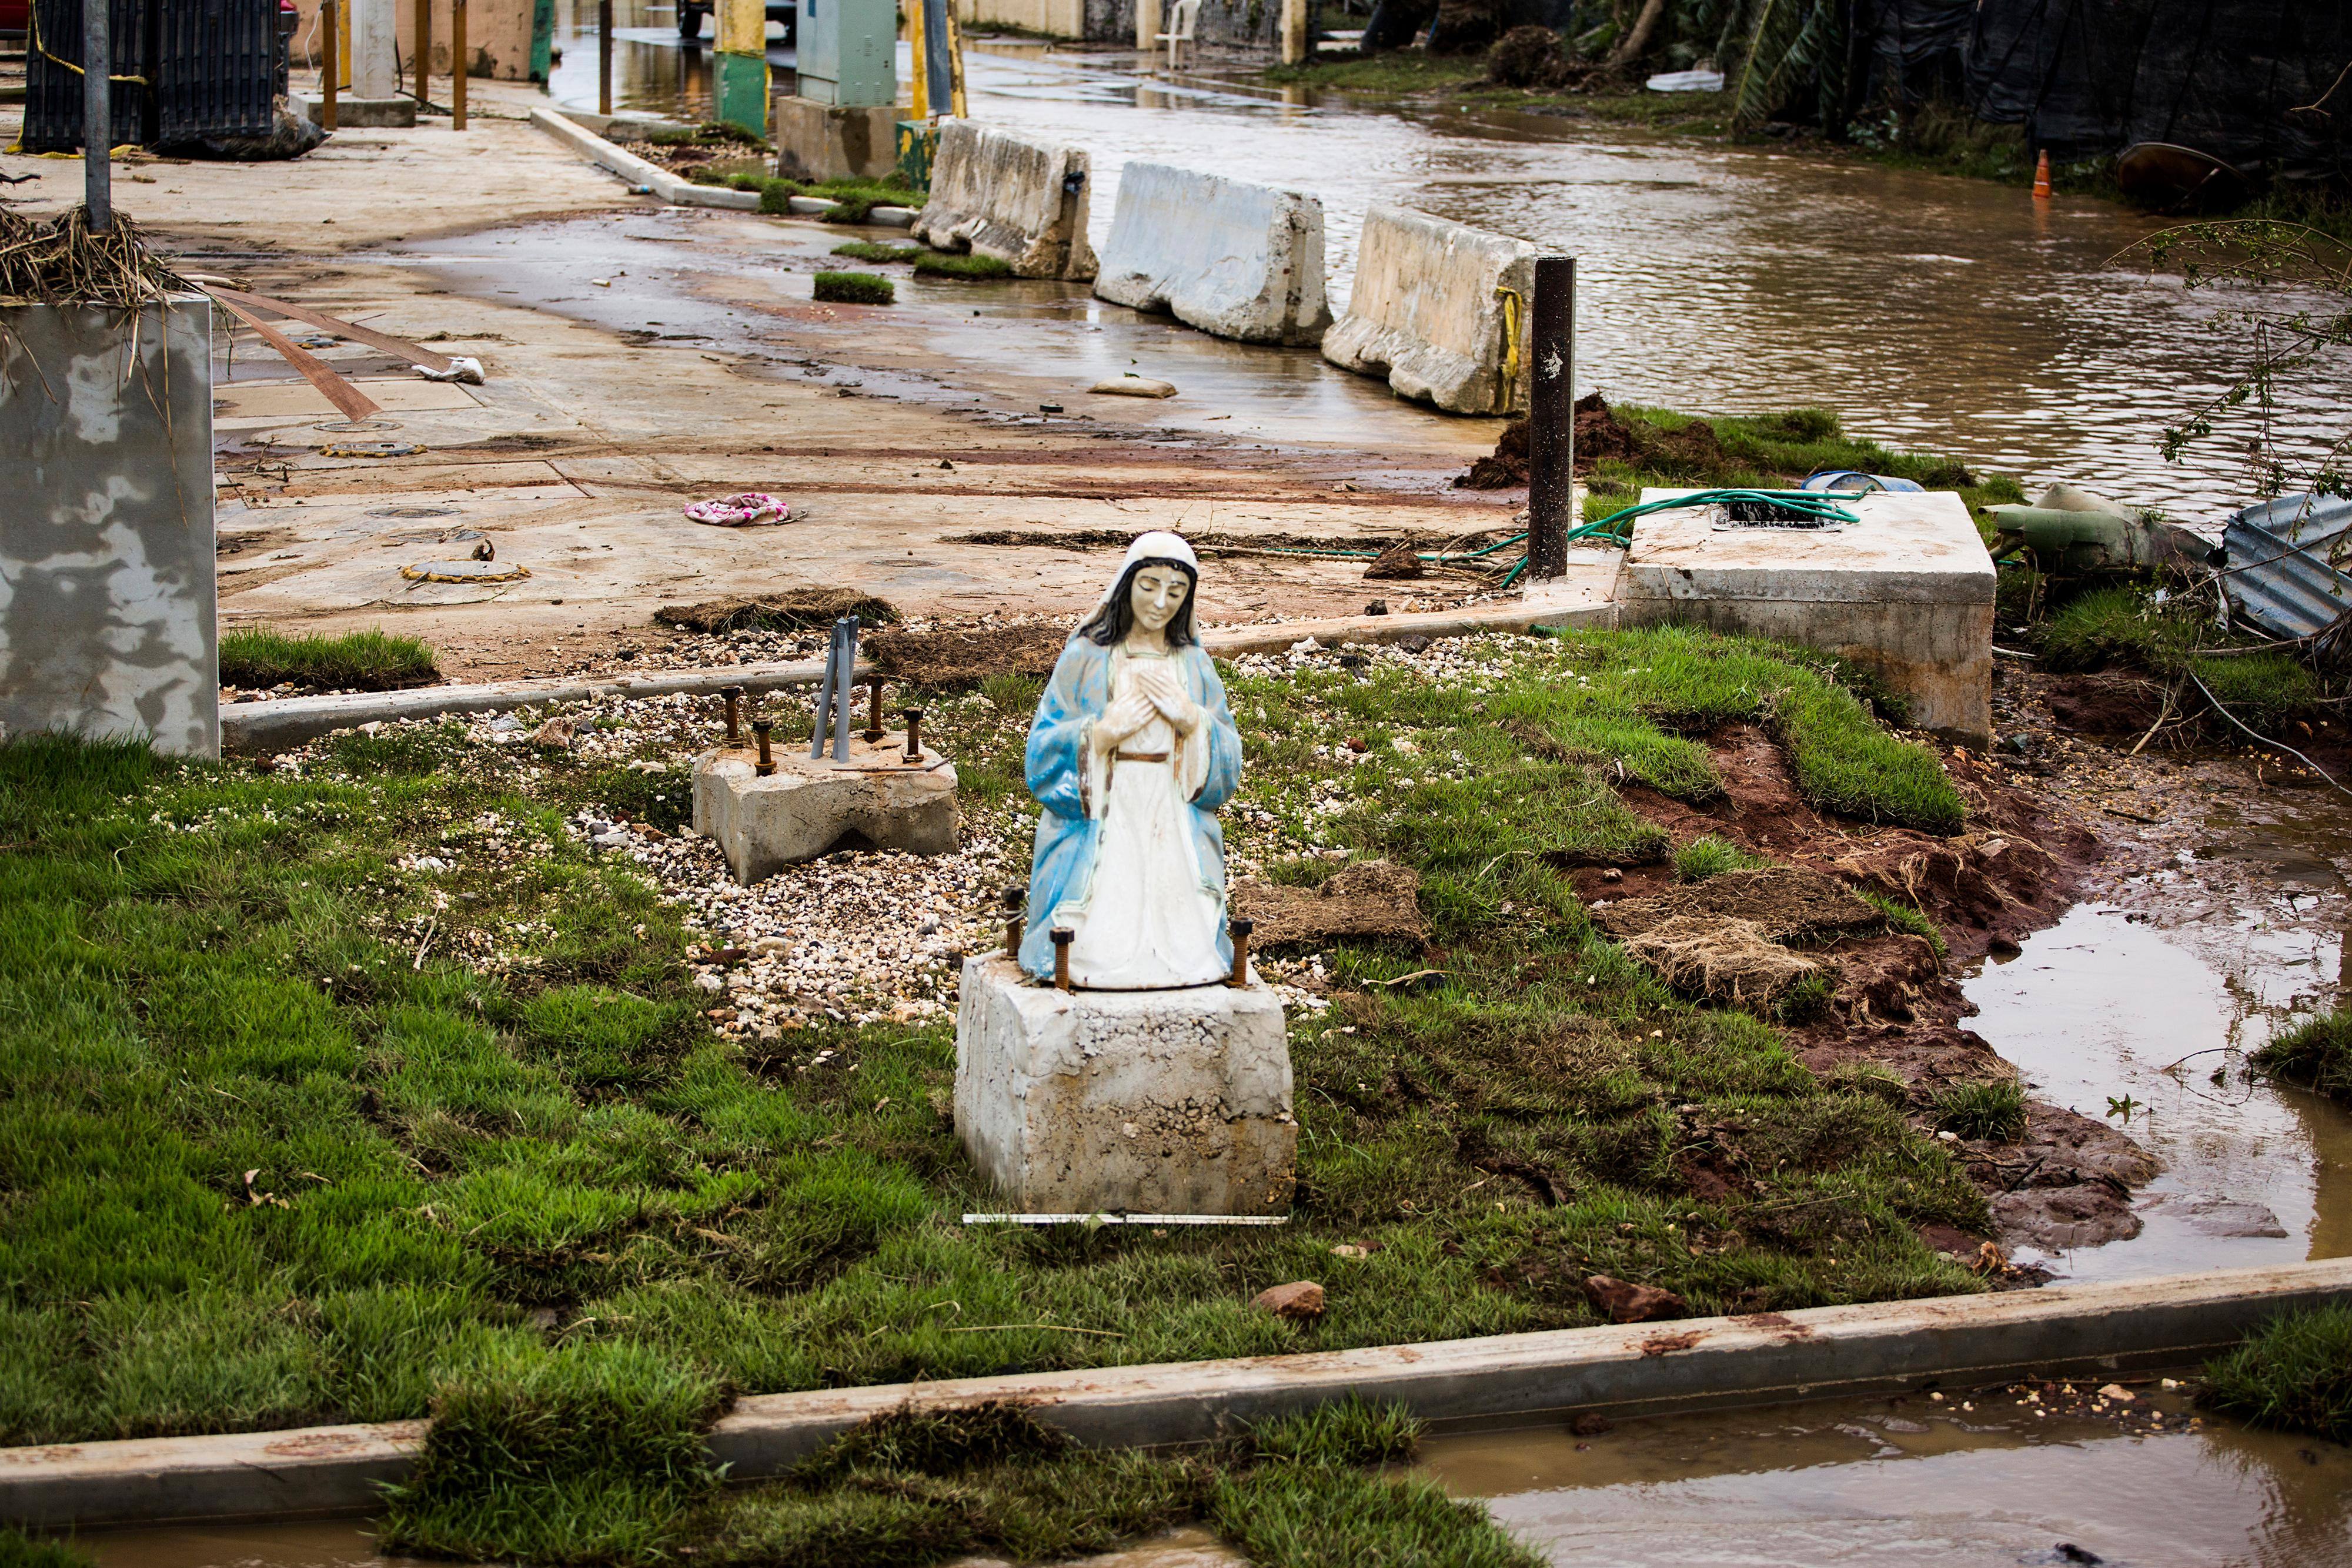 A statue of the Virgin Mary